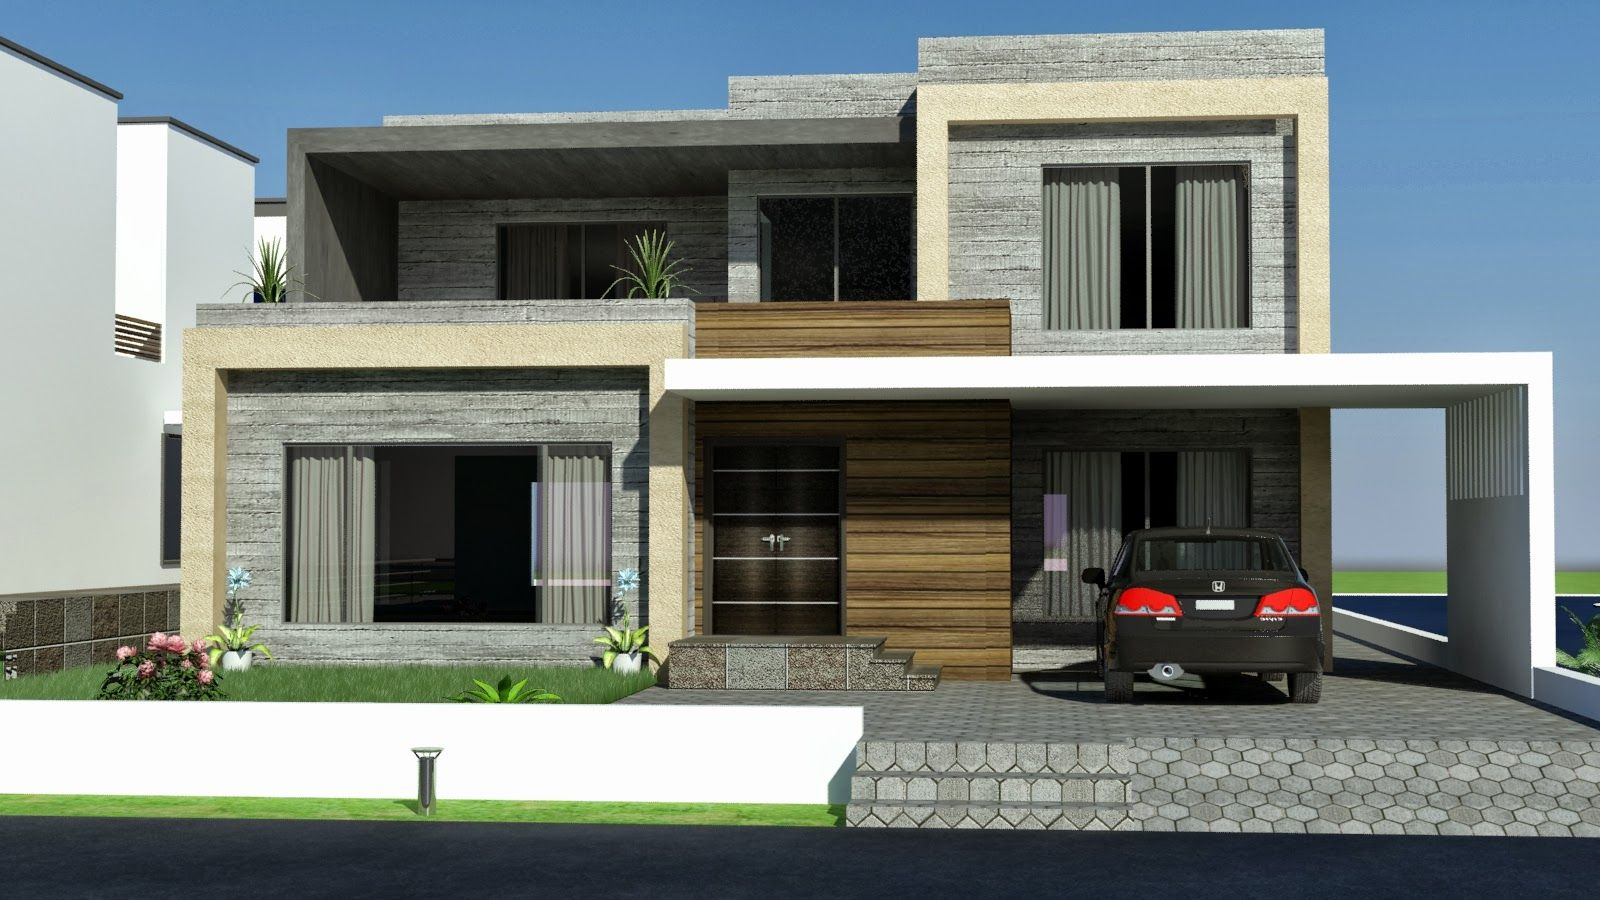 Front Elevation Modern House   front single story rear 2 stories. Front Elevation Modern House   front single story rear 2 stories